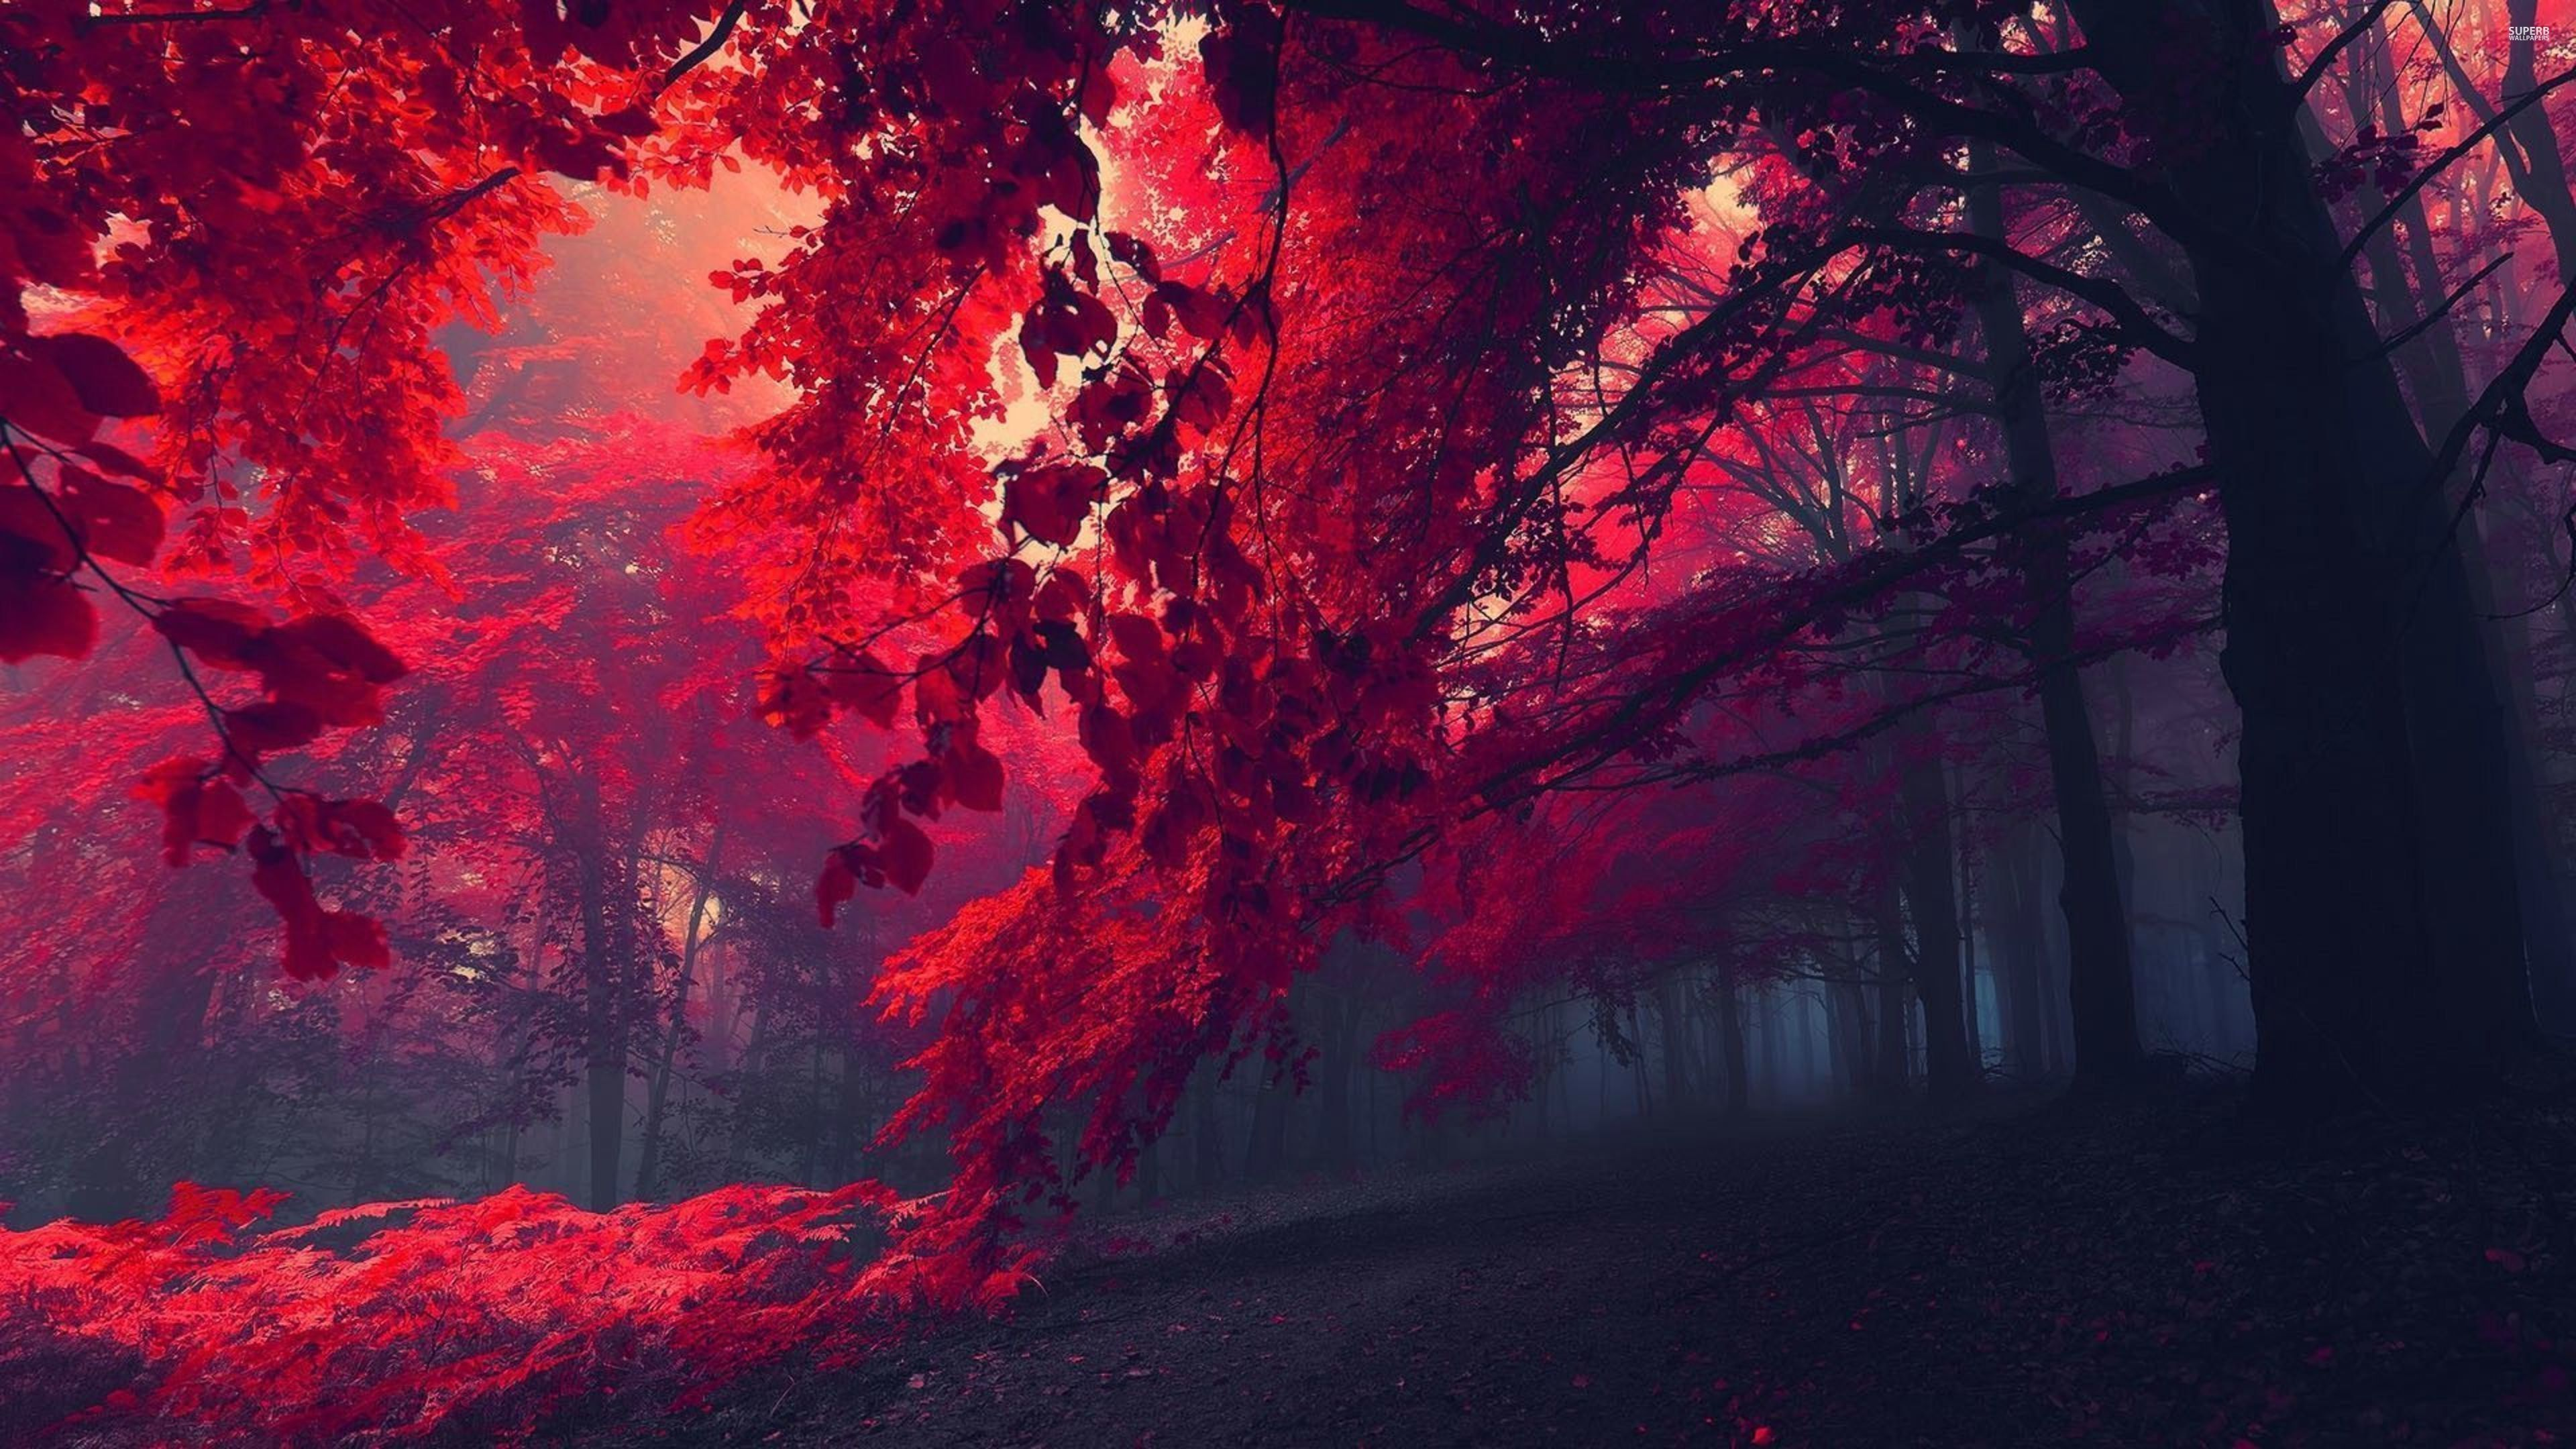 Red Forest 26750 3840x2160 Wallpaper 3840x2160 317502 3840x2160 Wallpaper Uhd Wallpaper Forest Wallpaper